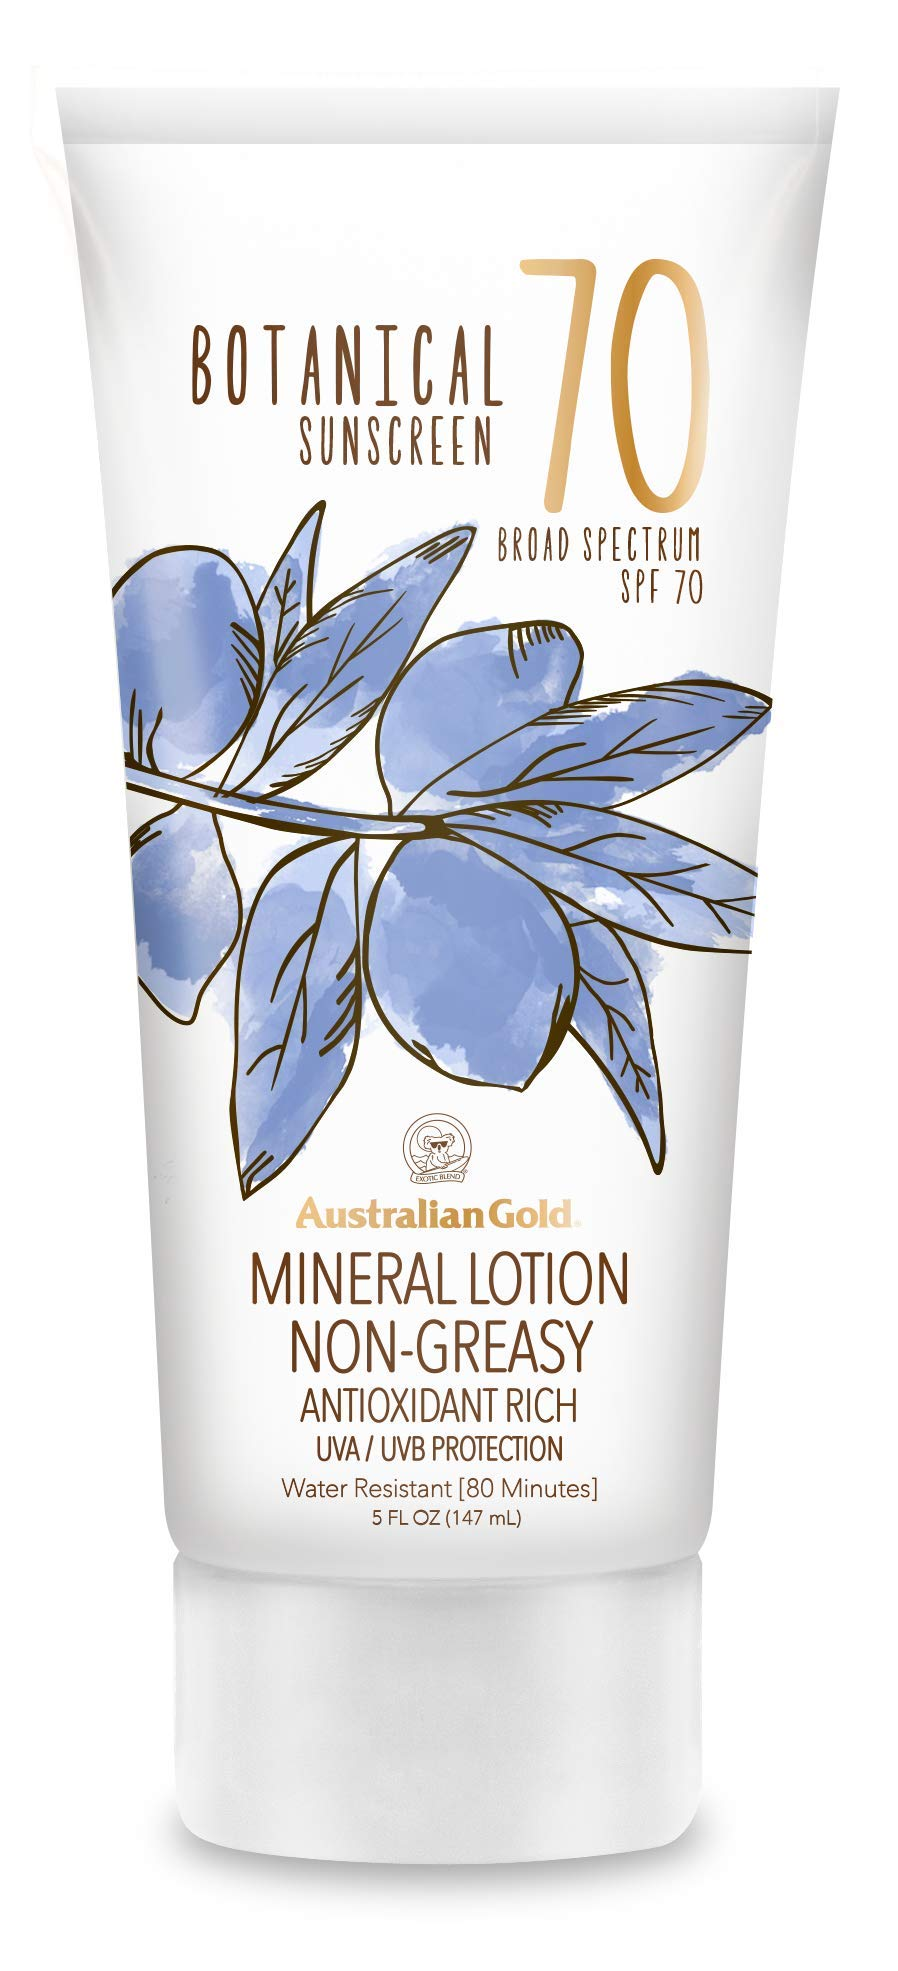 Australian Gold Botanical Sunscreen Mineral Lotion, Broad Spectrum, Water Resistant, SPF 70, 6 Ounce by Australian Gold